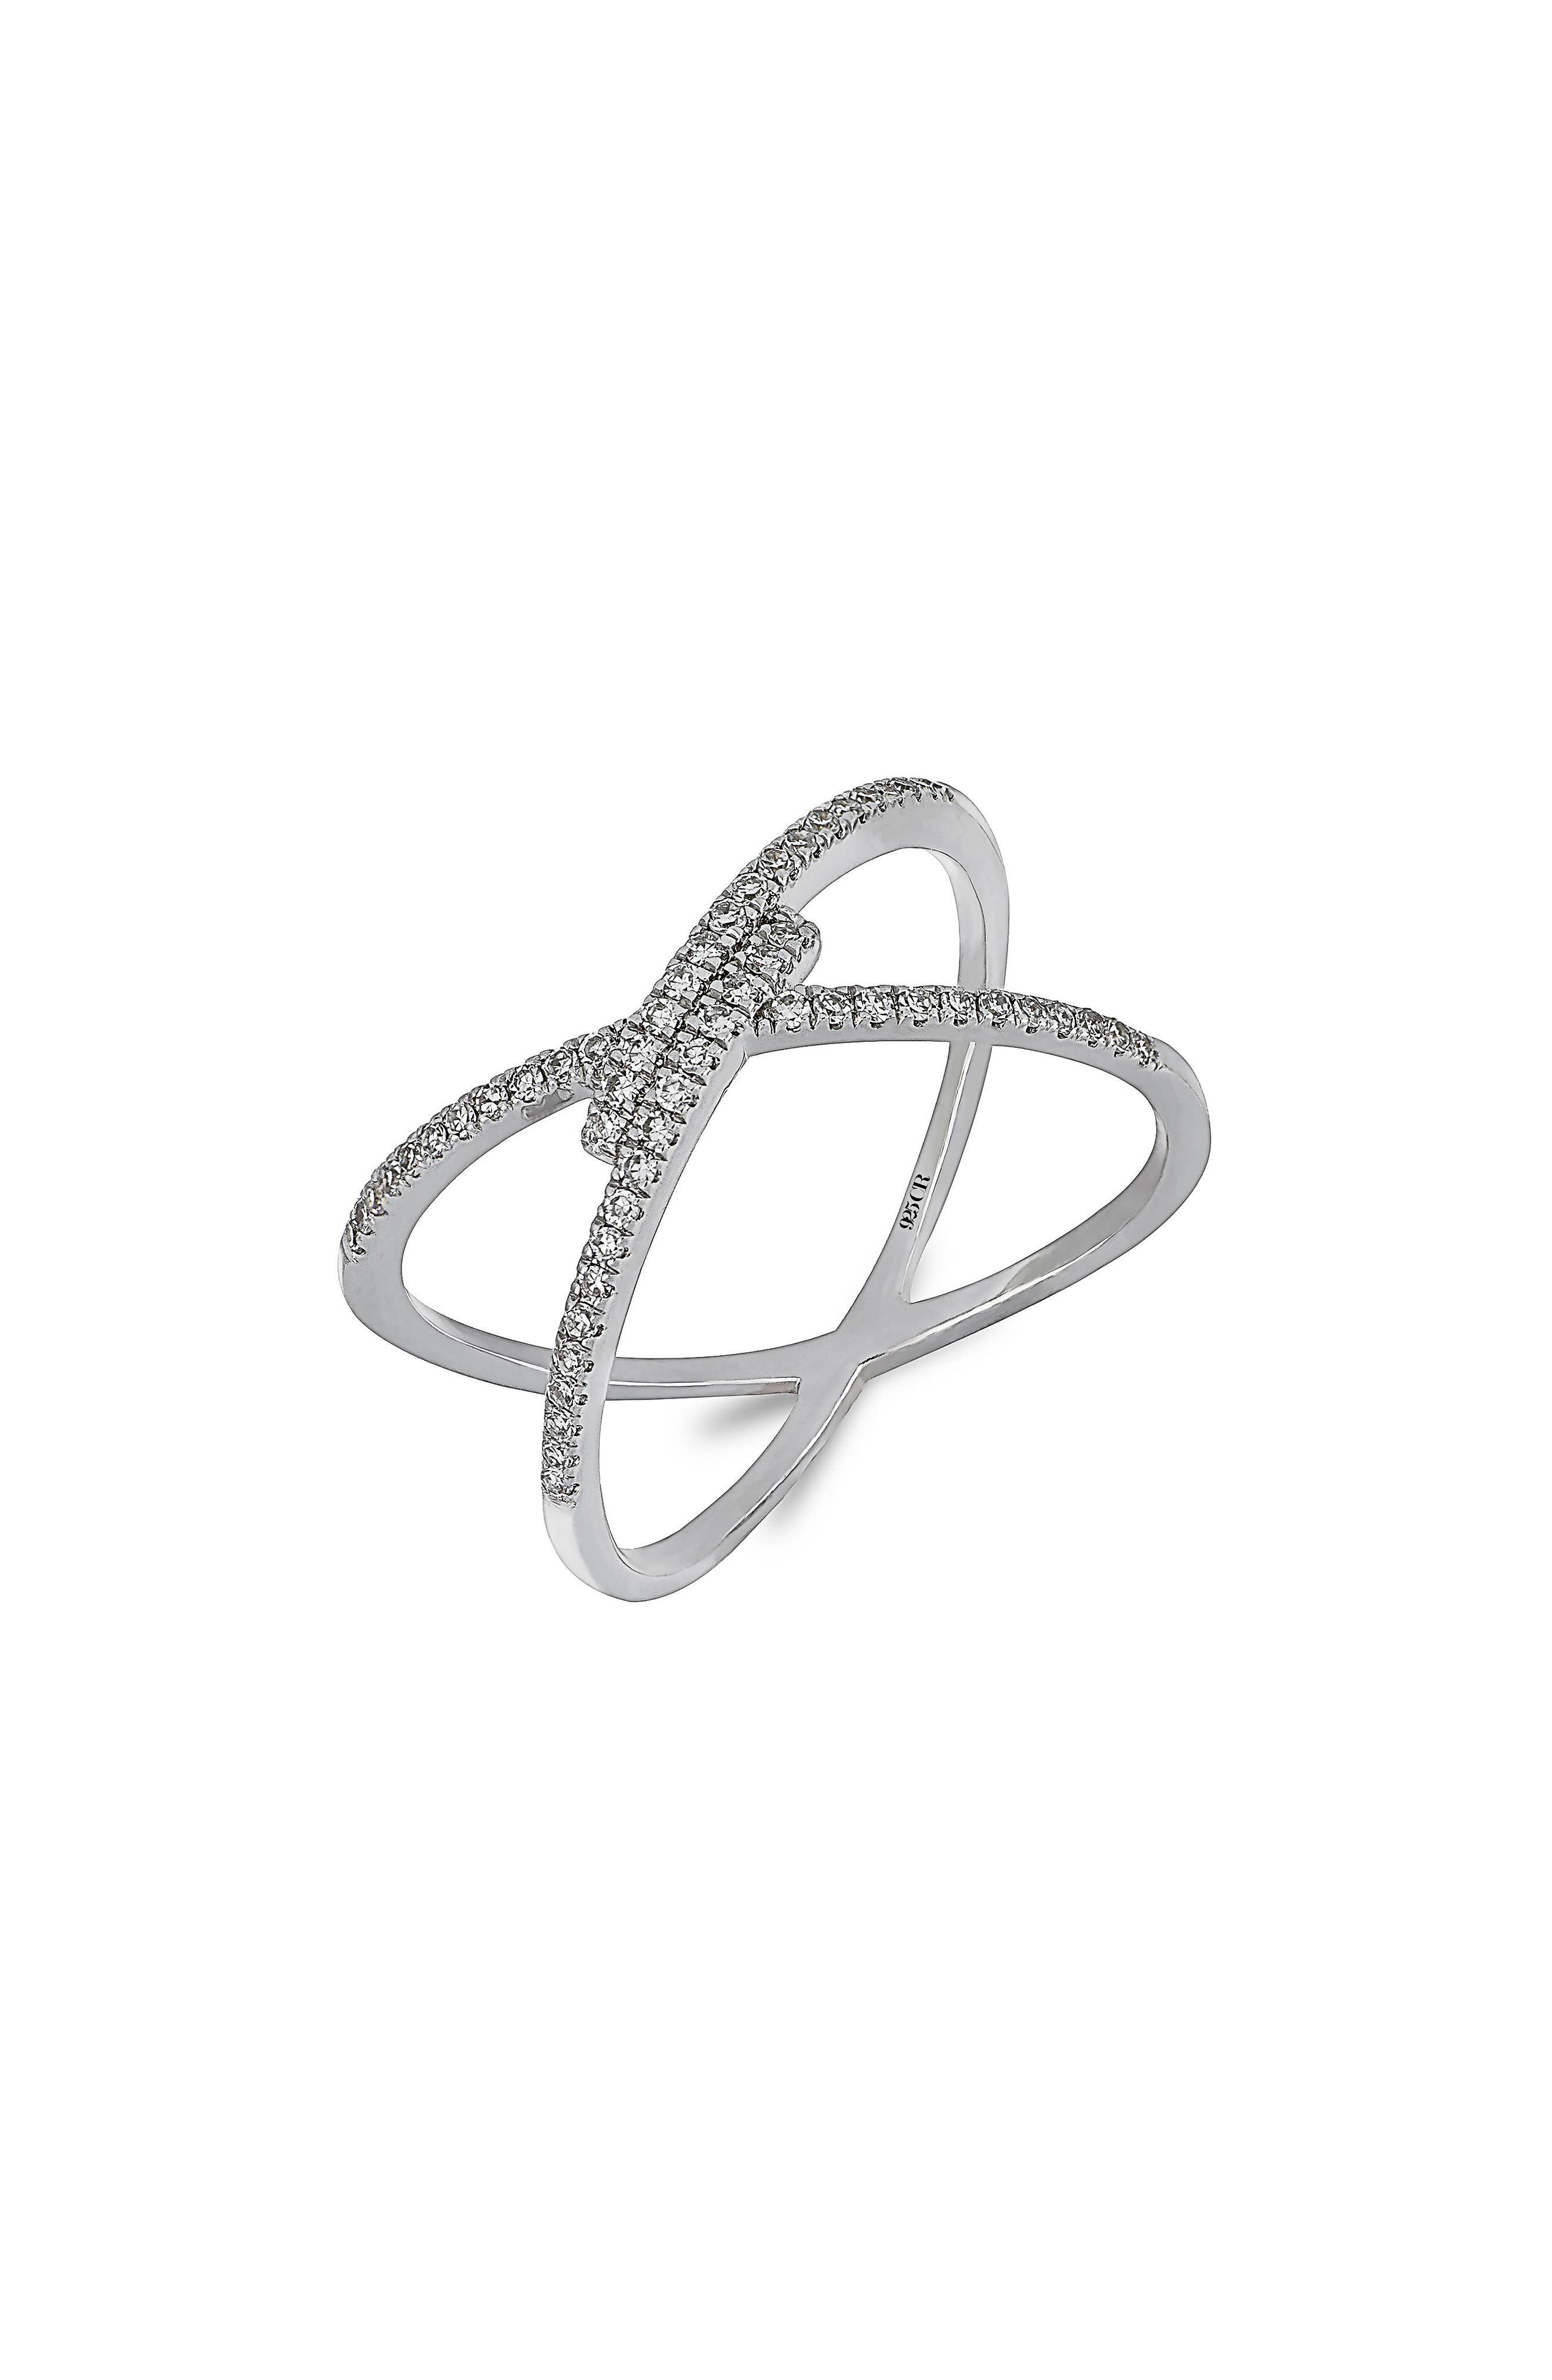 Main Image - Carrière Crossover Diamond Ring (Nordstrom Exclusive)